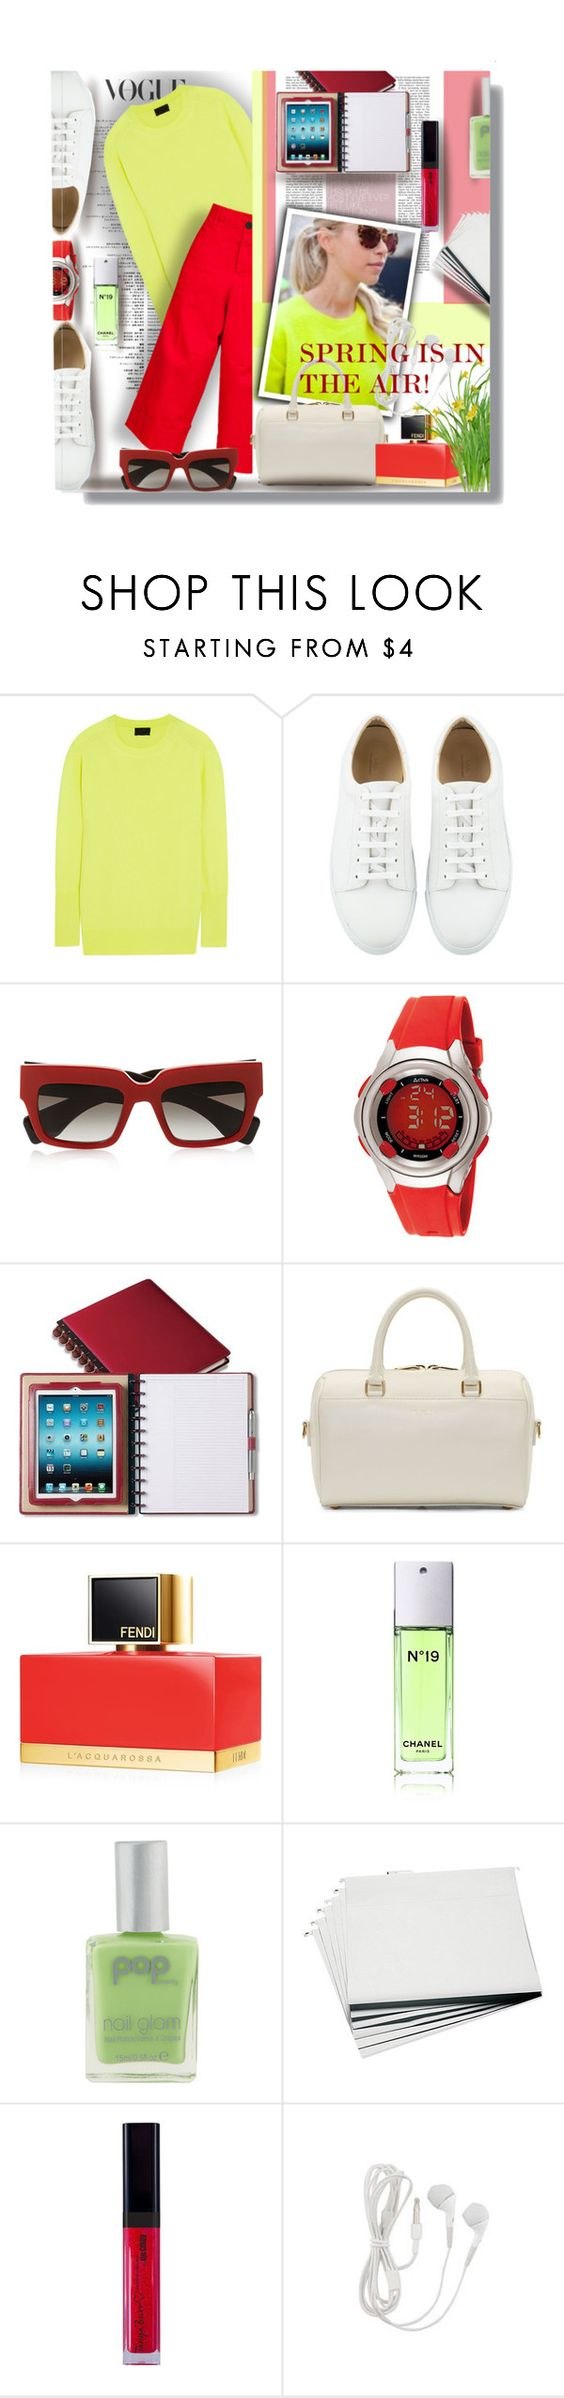 """""""SPRING IS IN THE AIR"""" by angelflair ❤ liked on Polyvore featuring J.Crew, Prada, Activa, Yves Saint Laurent, Fendi, Chanel, POP and Advantus"""